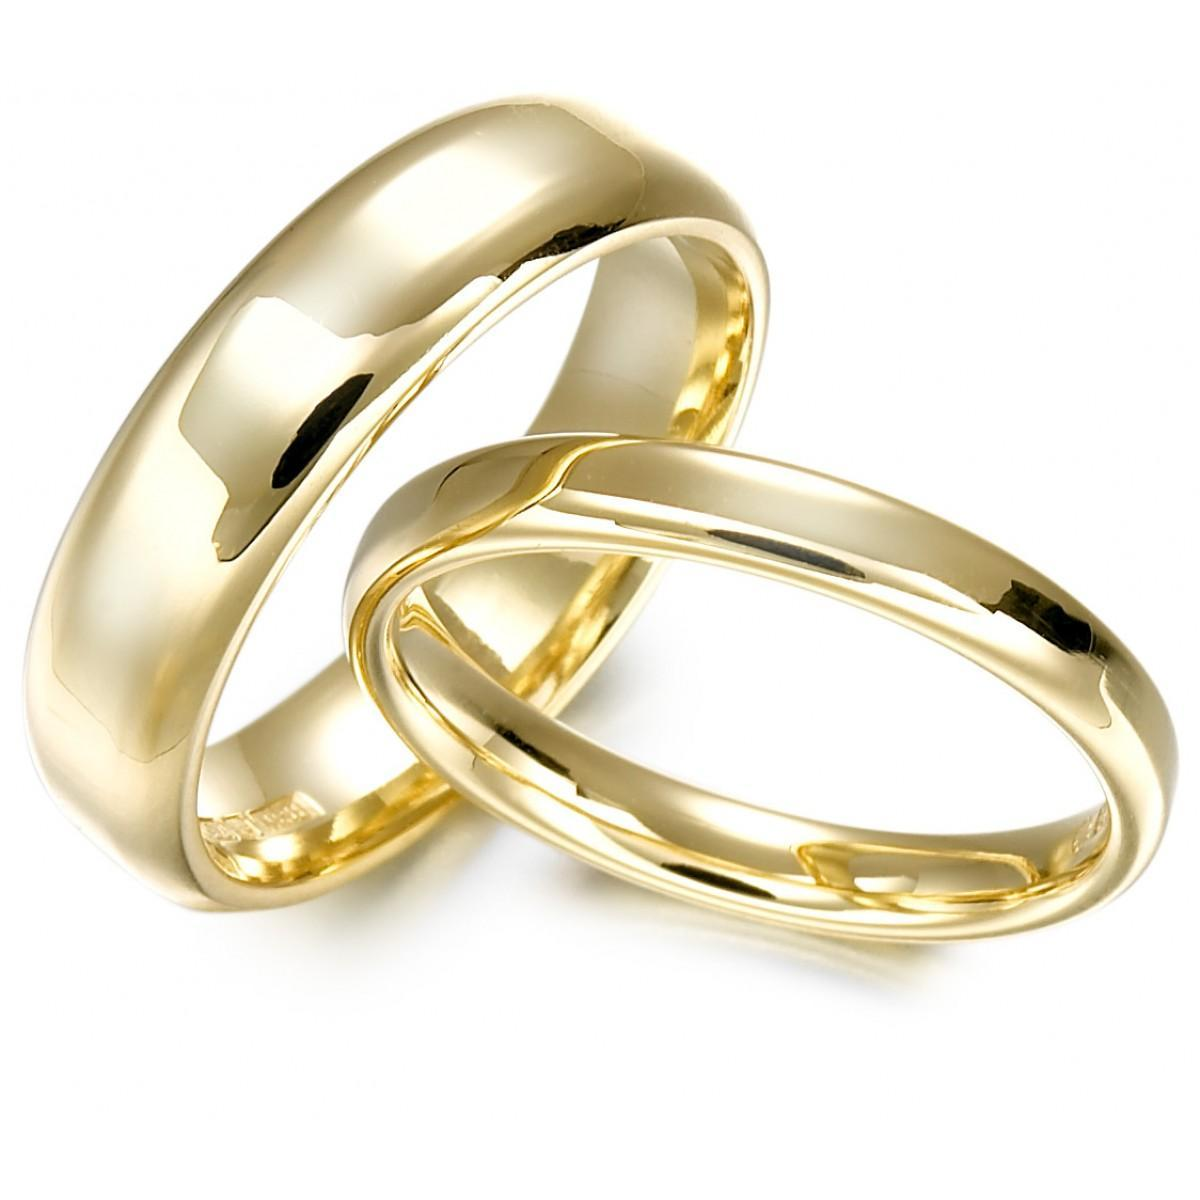 It is a picture of Wedding Rings Design for Android - APK Download